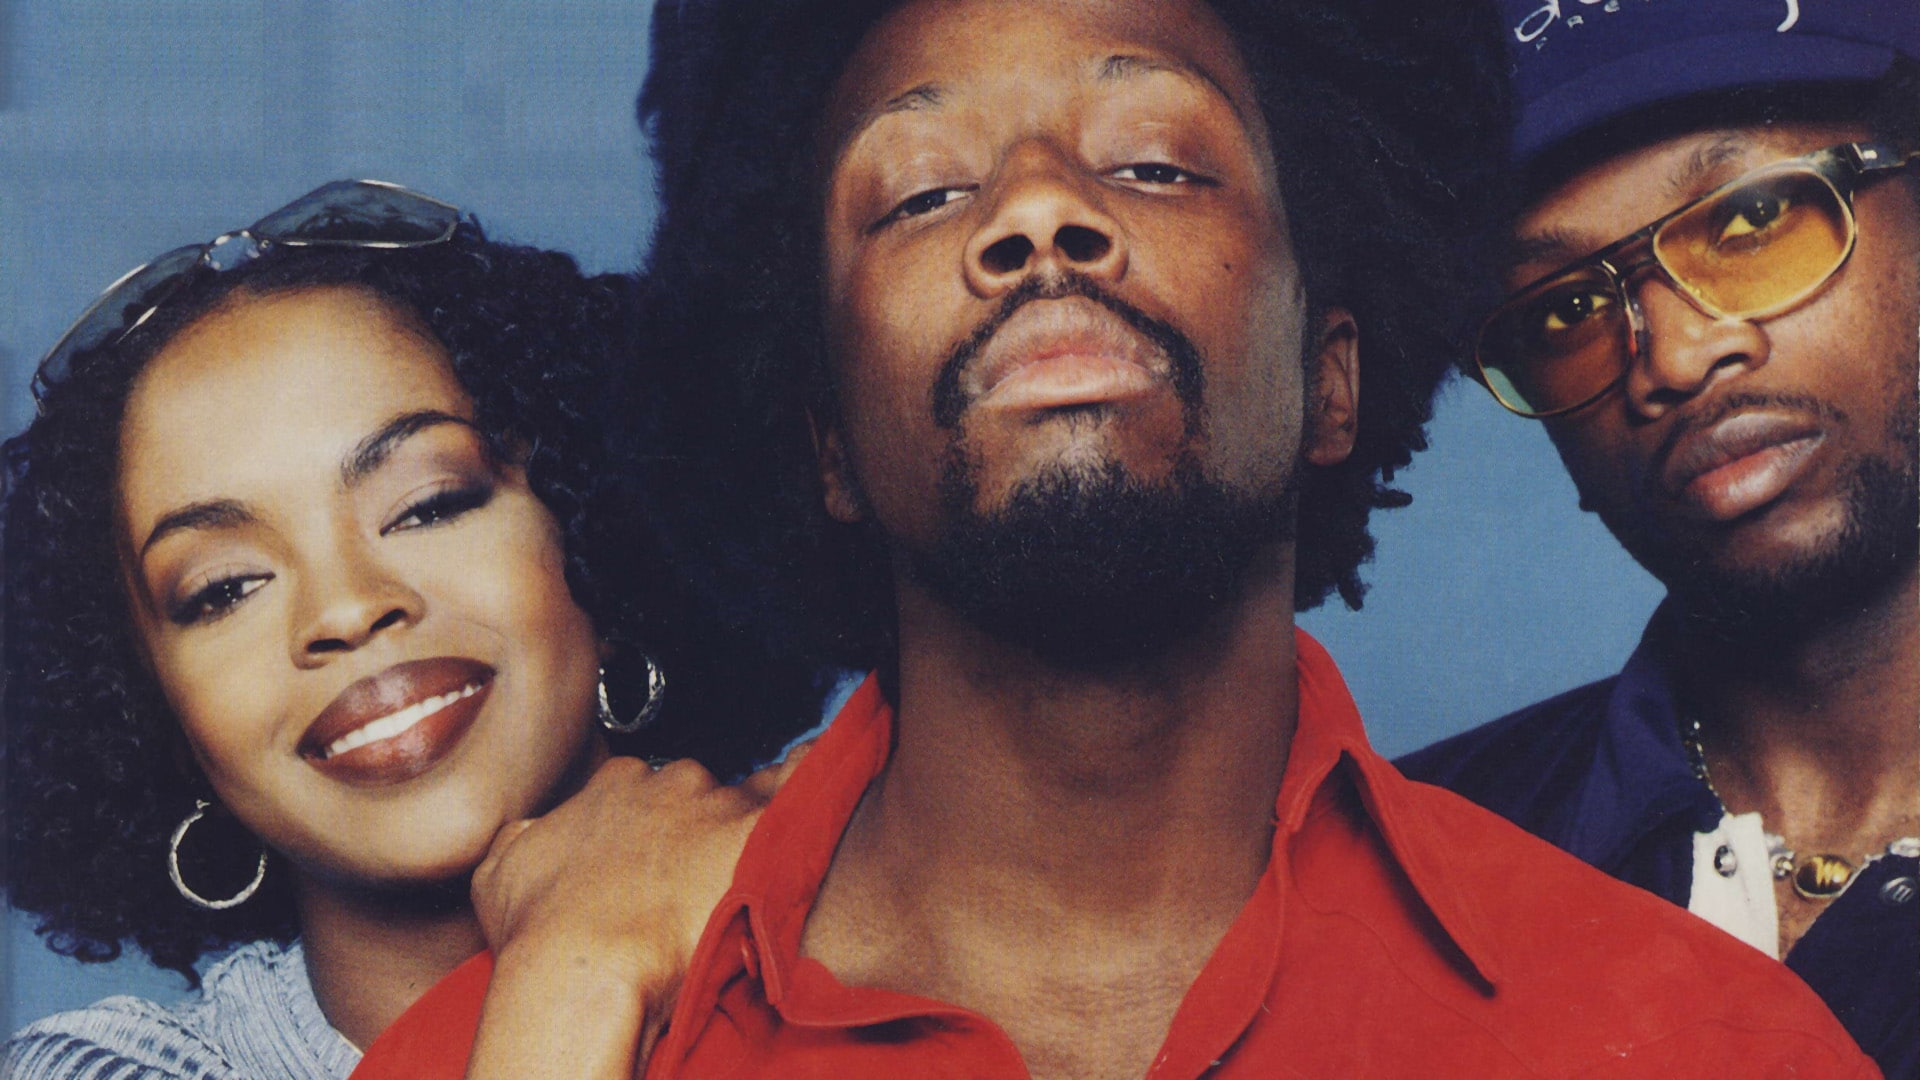 Fugees - Killing Me Softly